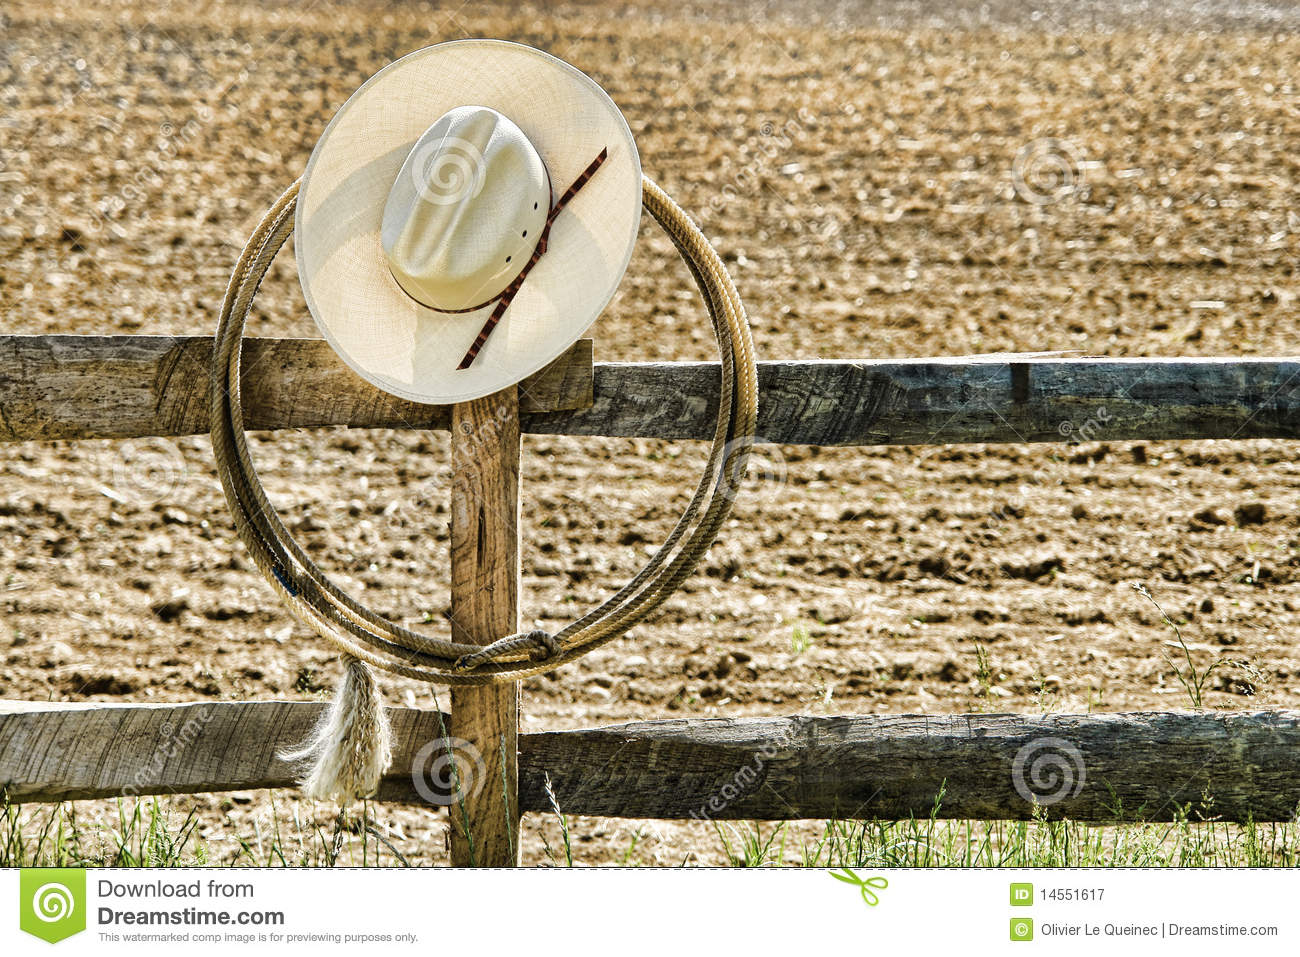 6b5b9401a42 American West rodeo cowboy white straw hat and roping lasso hanging on an old  wood fence post on an agriculture farm field at a Western ranch